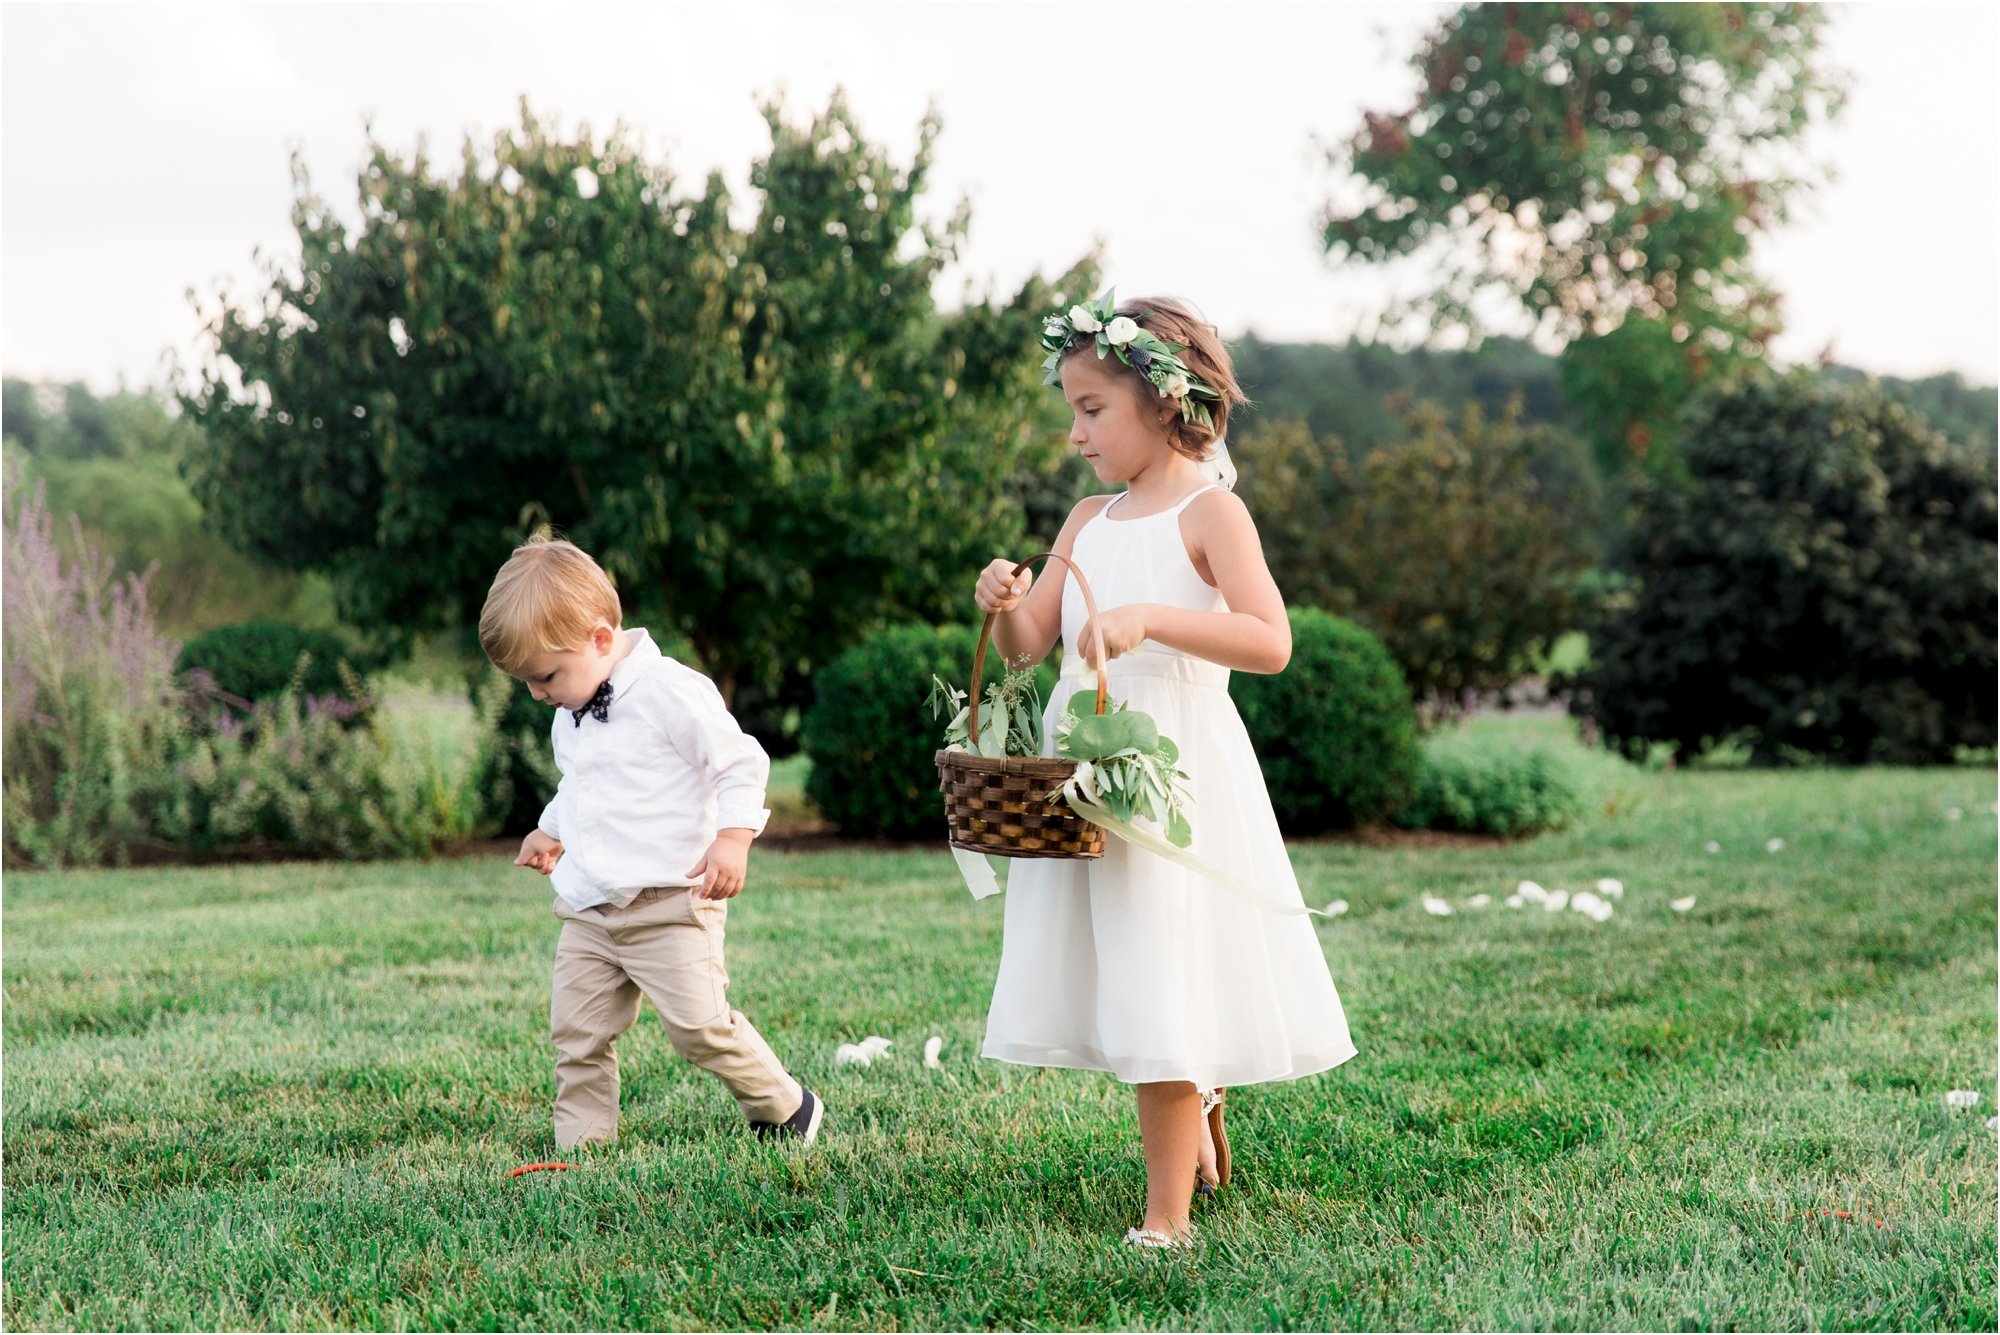 michelle-george-early-mountain-vineyard-charlottesville-virginia-wedding-photos_0020.jpg